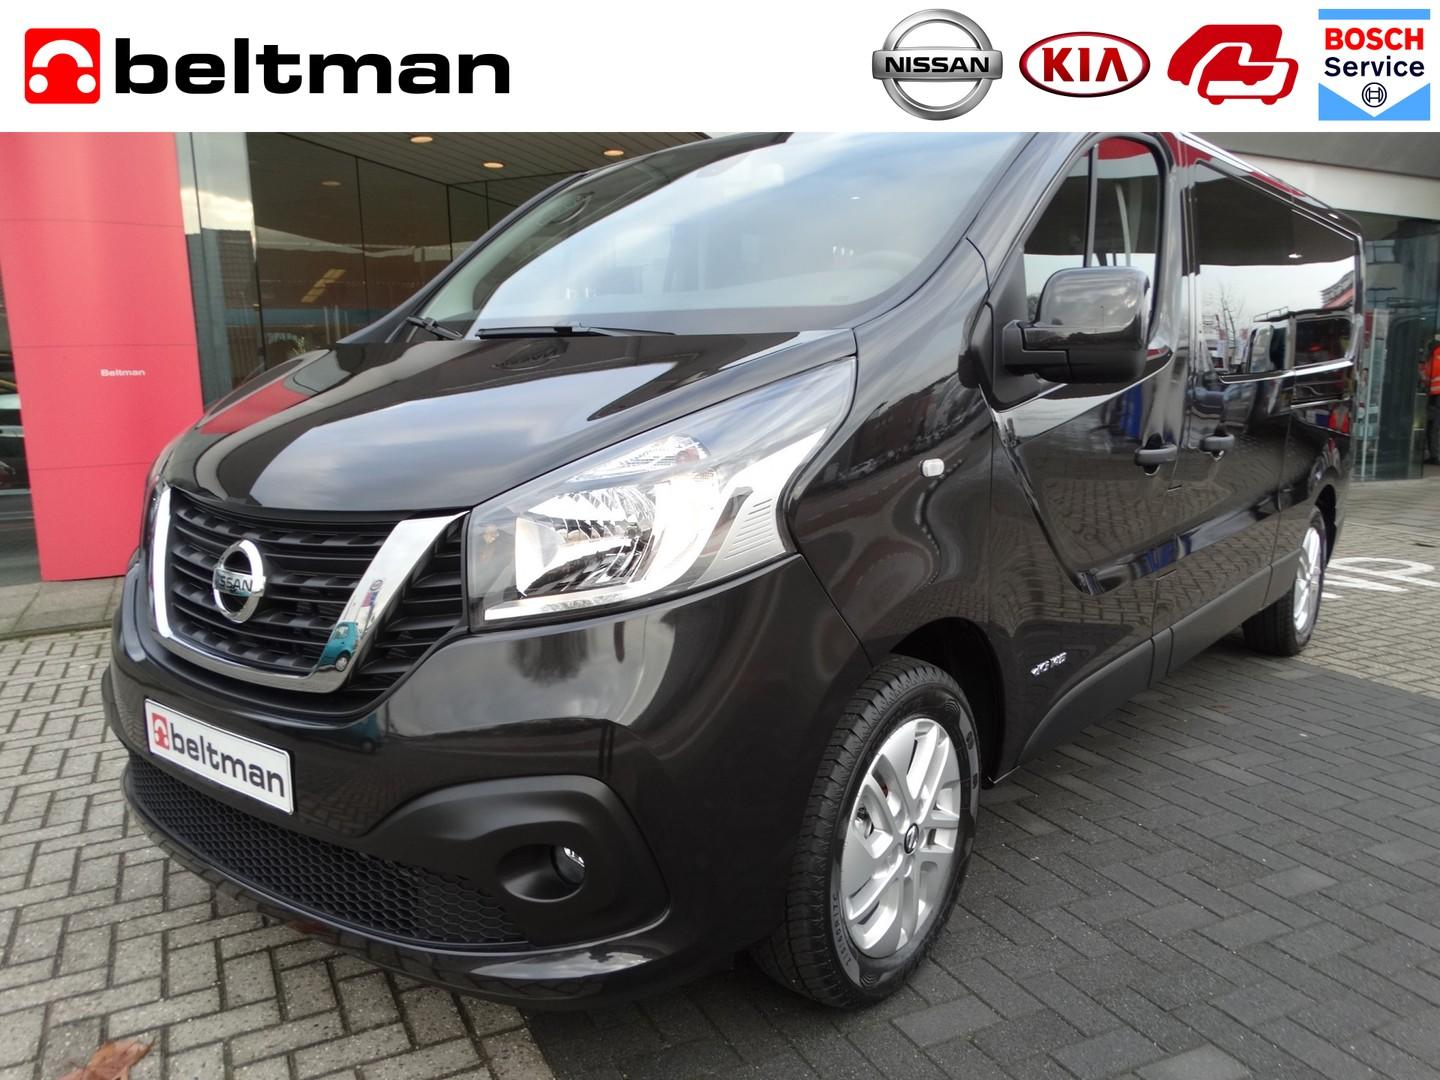 Nissan Nv300 1.6 dci 145 l2h1 optima luxe dubbele cabine netto deal!